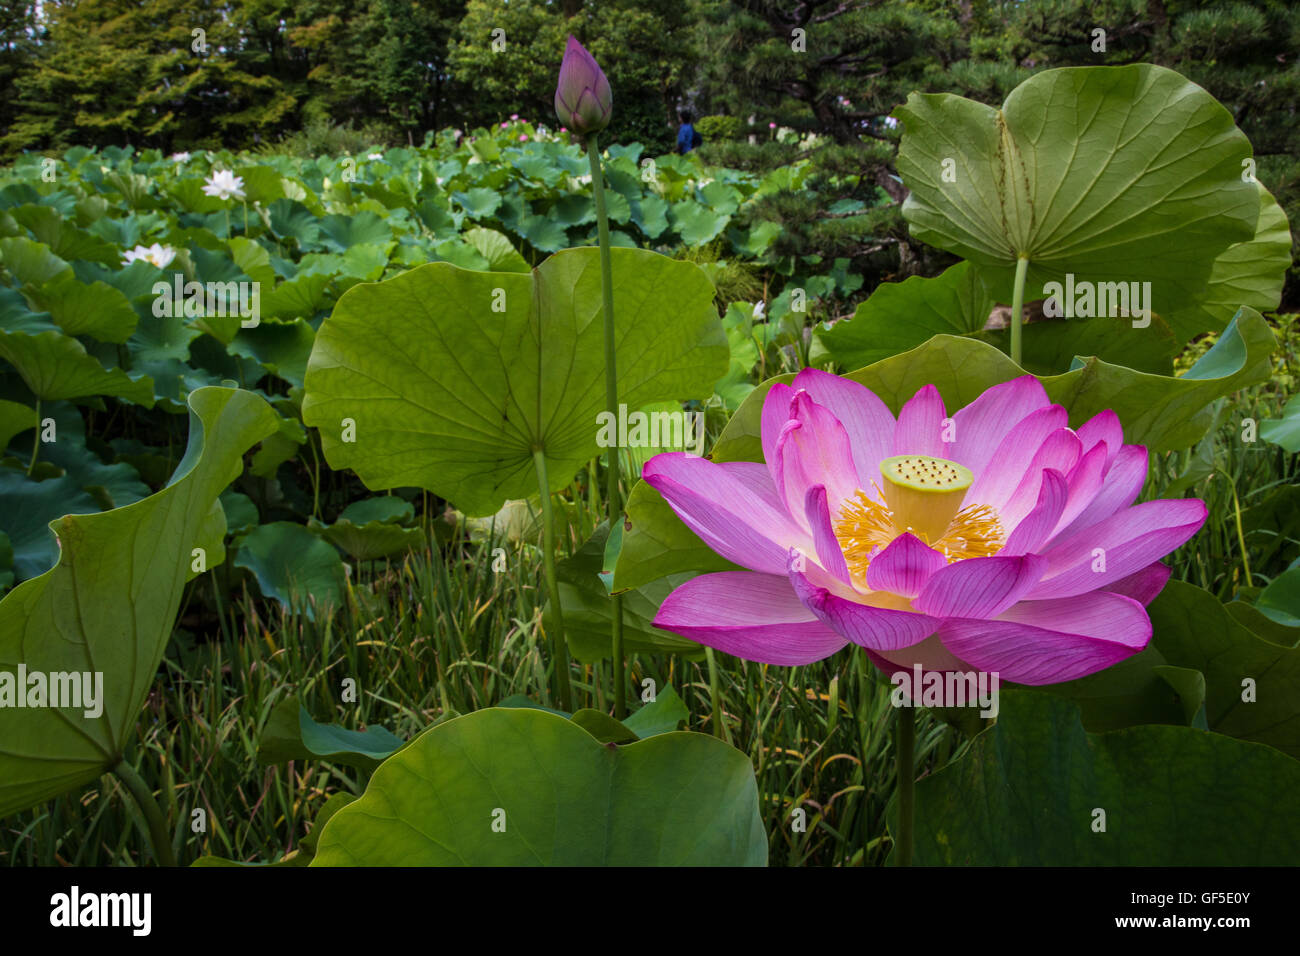 The lotus flower grows out of muddy ponds and display pink or white the lotus flower grows out of muddy ponds and display pink or white flowers that survive for only a few days in summer mightylinksfo